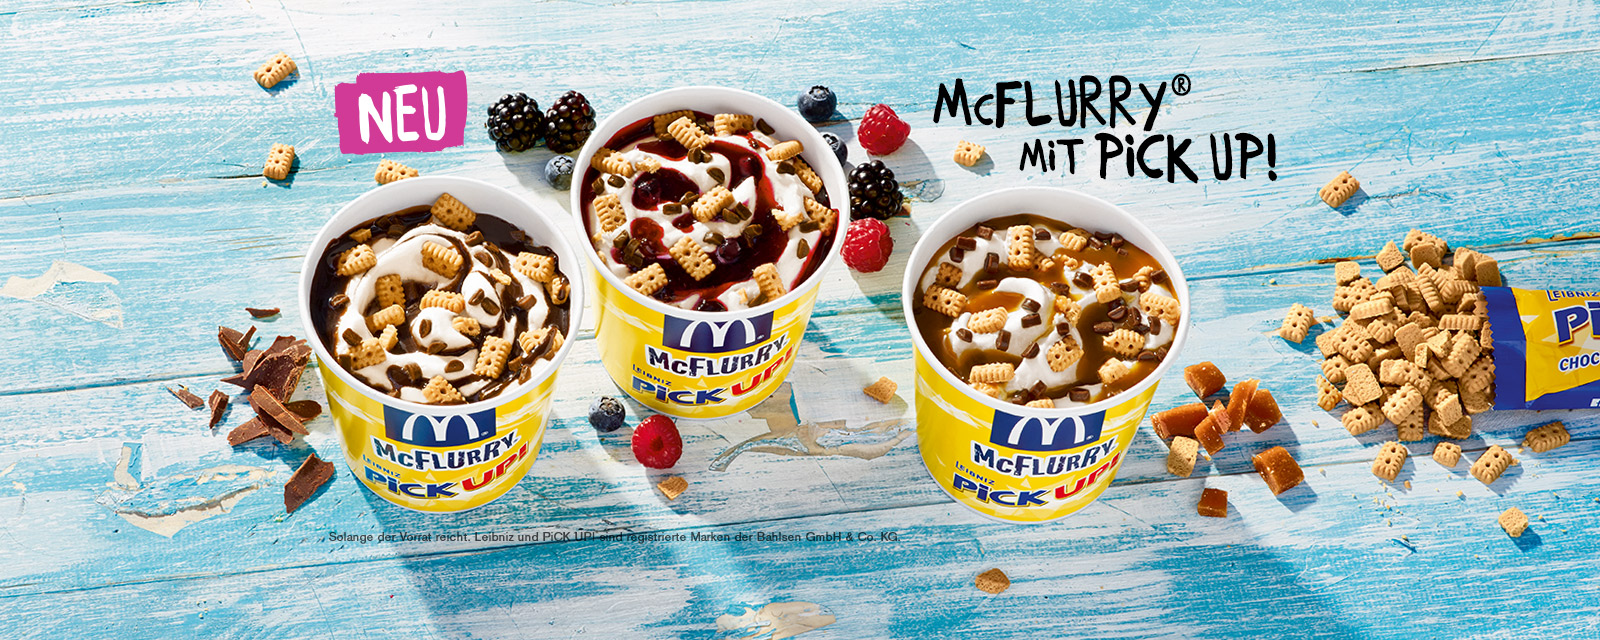 McFlurry PiCK UP!